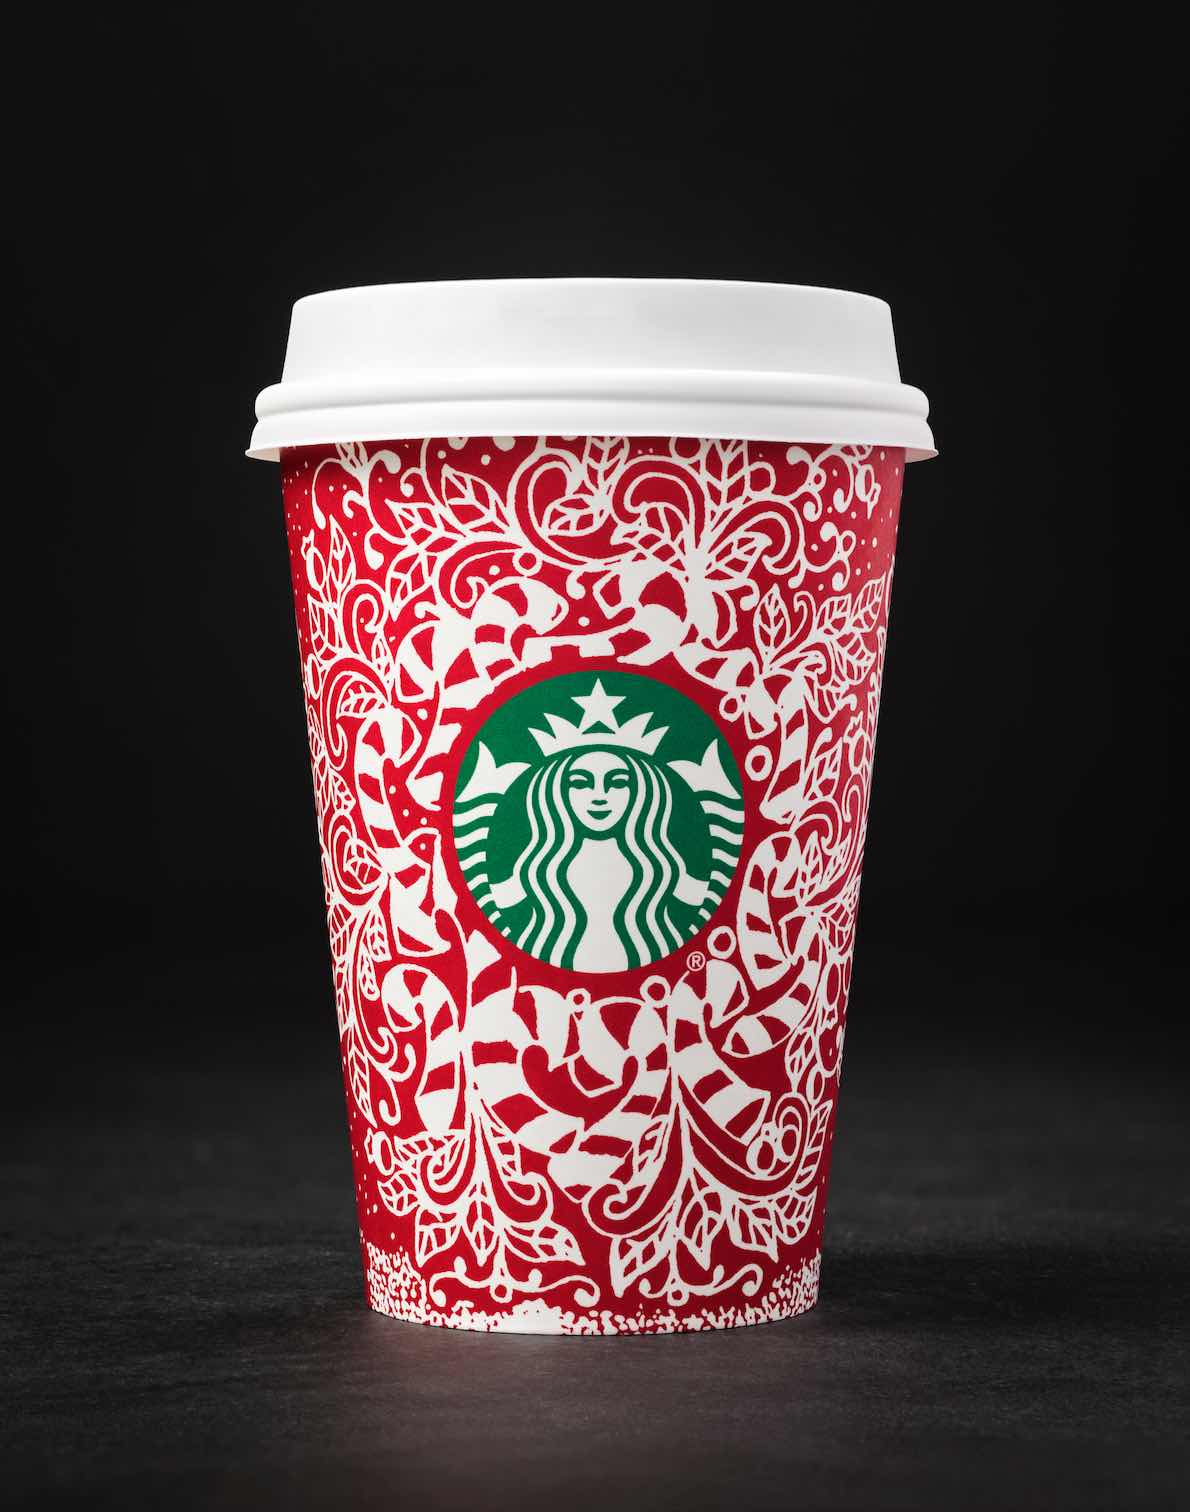 starbucks-candy-canes-by-jennifer-seattle-united-states-aspirantsg